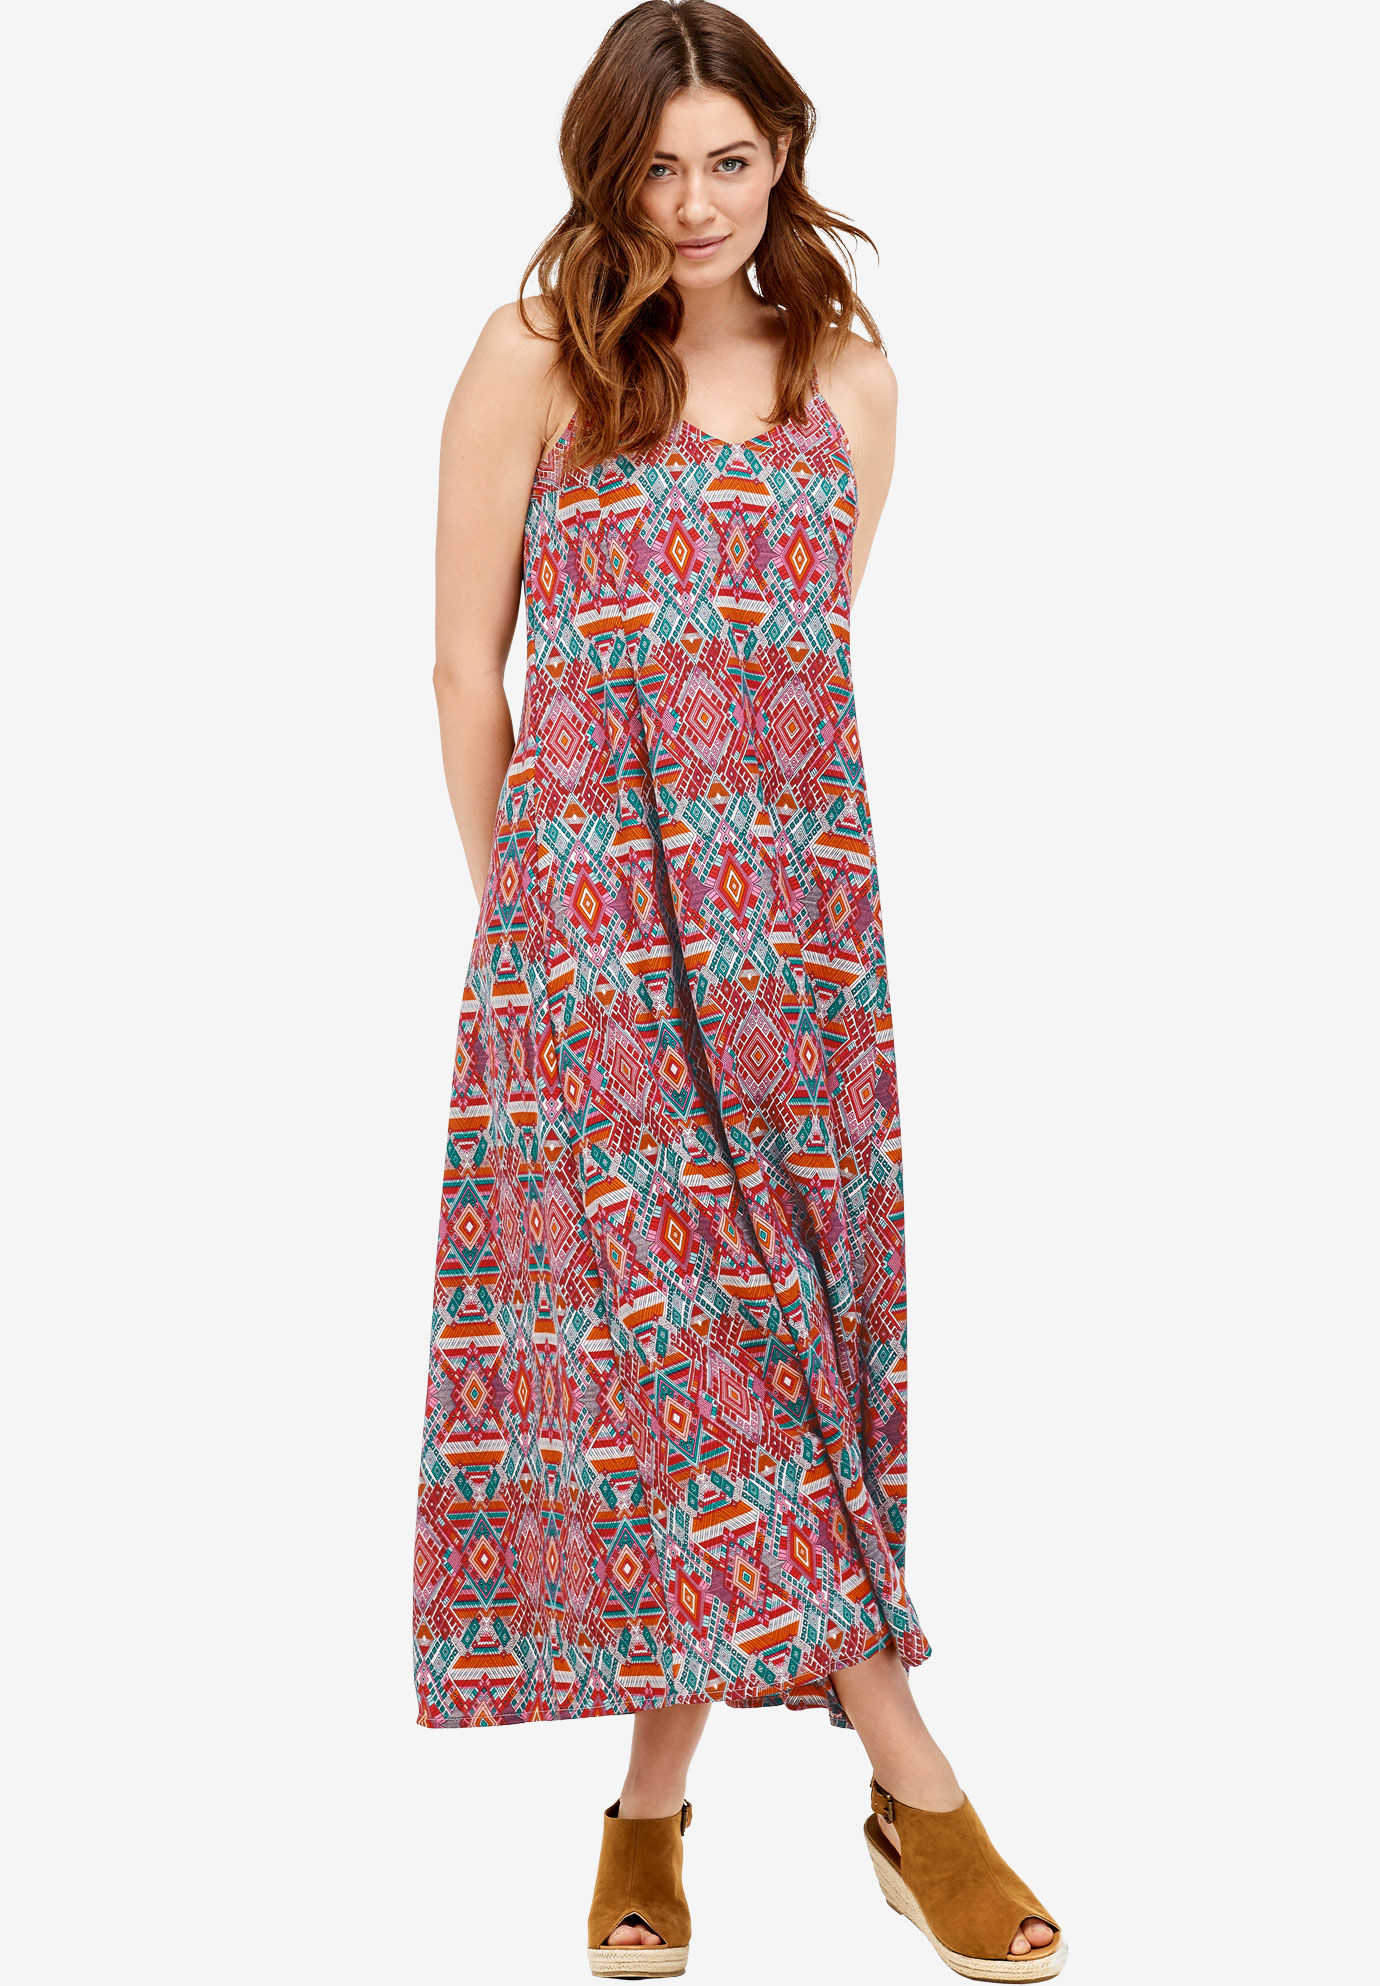 Crisscross Back Maxi Dress by ellos®| Plus Size Maxi Dresses | Ellos